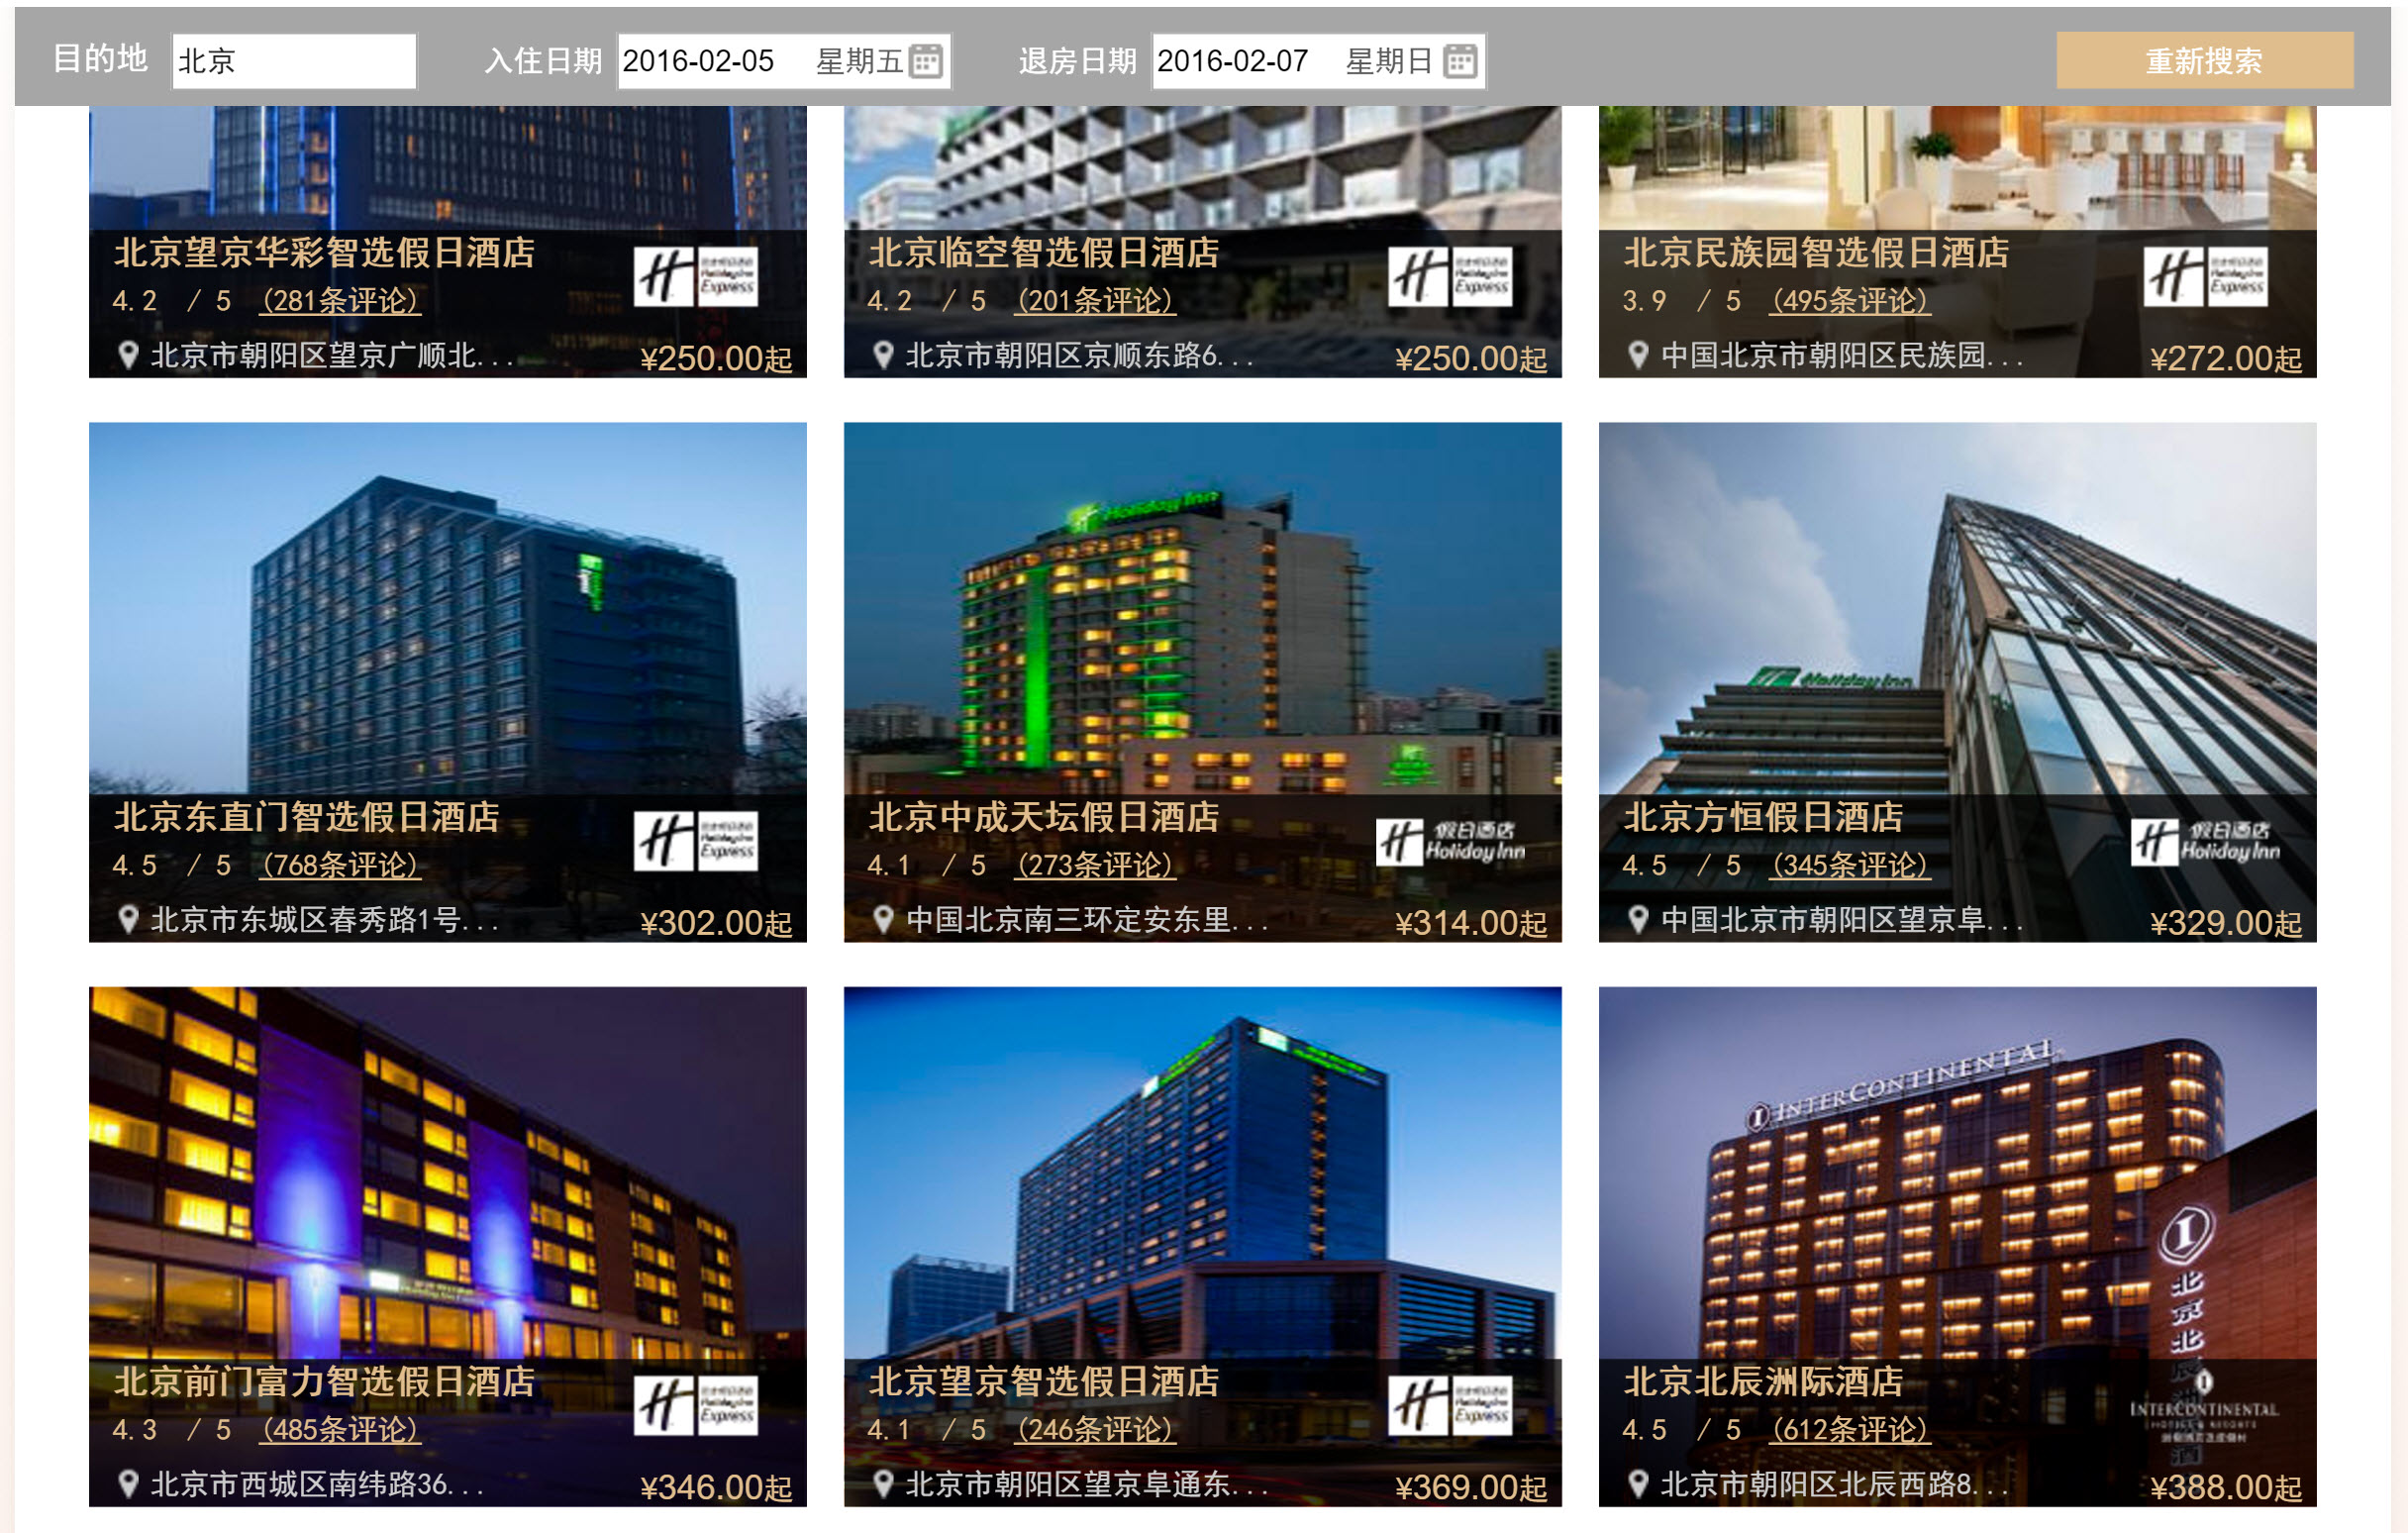 2016-january-ihg-china-sale-beijing